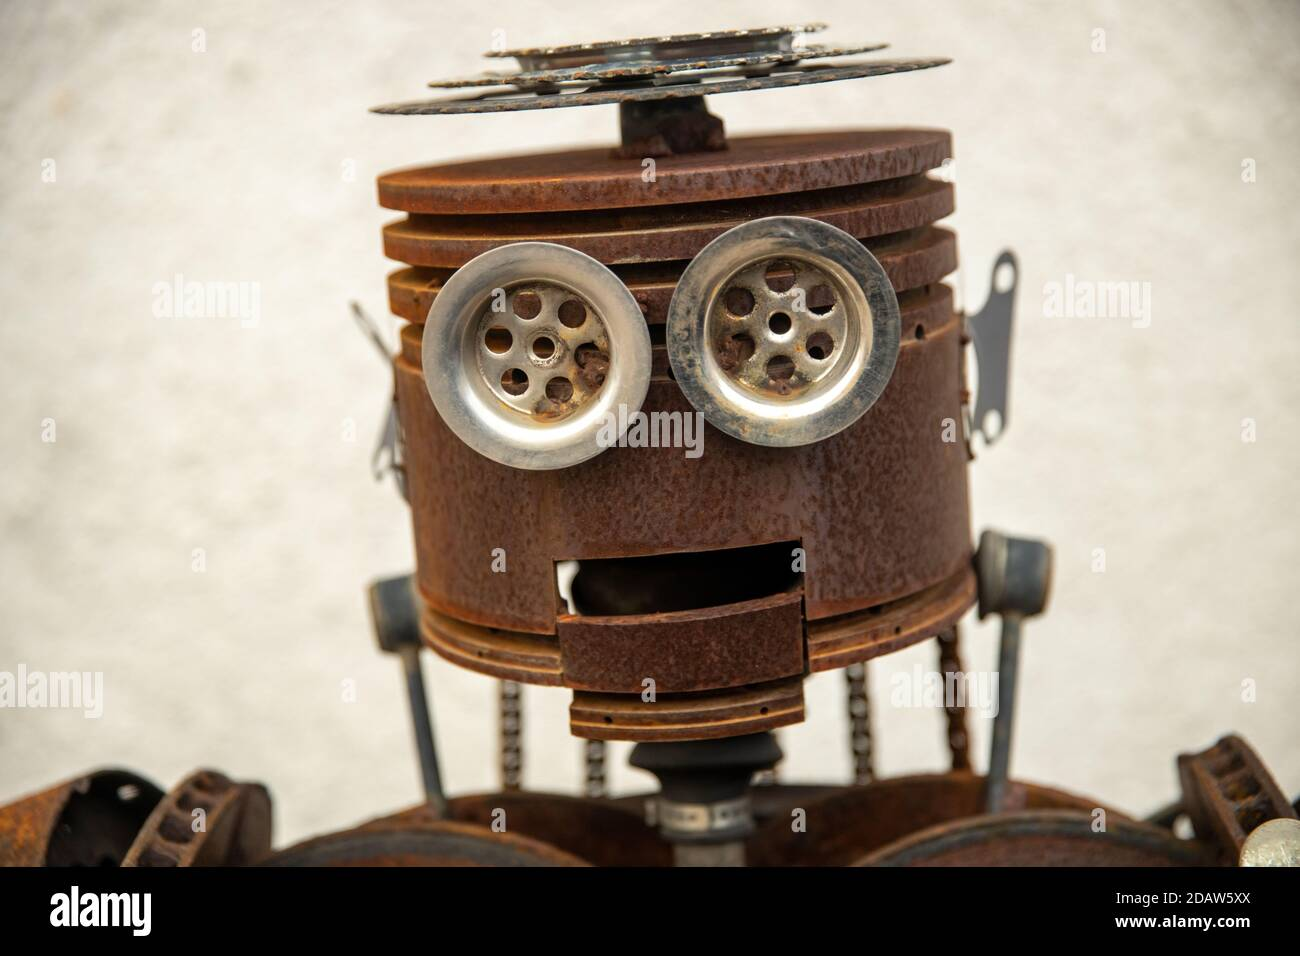 Russia. Vyborg. 10.10.2020 Statue of a robot assembled from auto parts Stock Photo